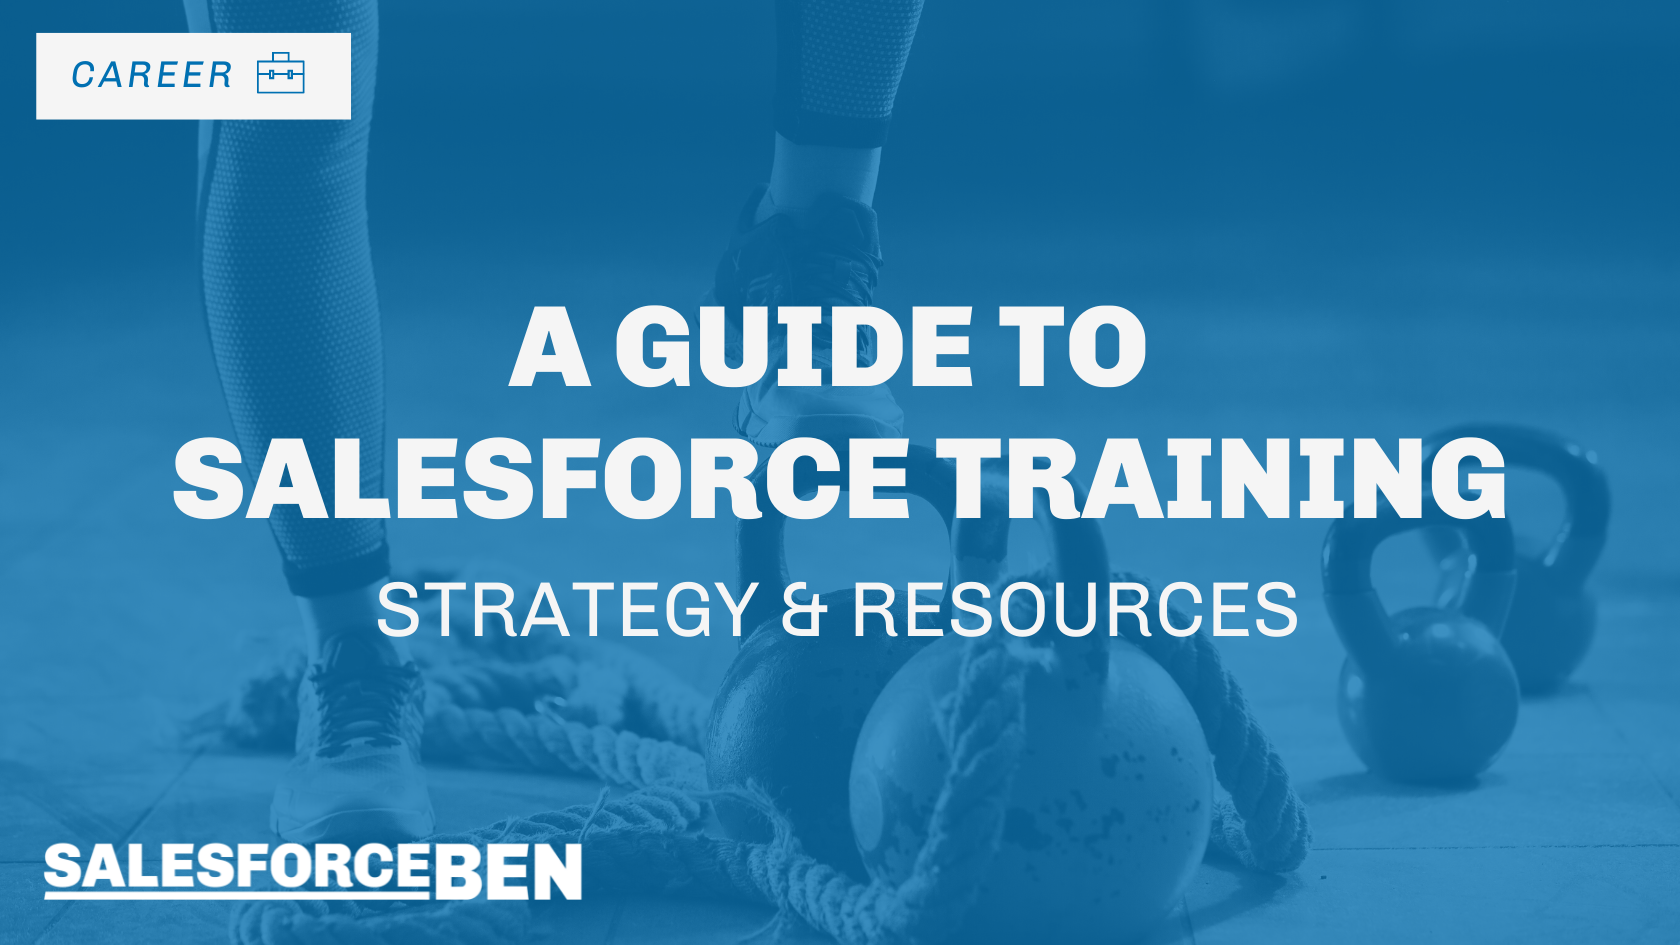 A Guide to Salesforce Training (Strategy & Resources)